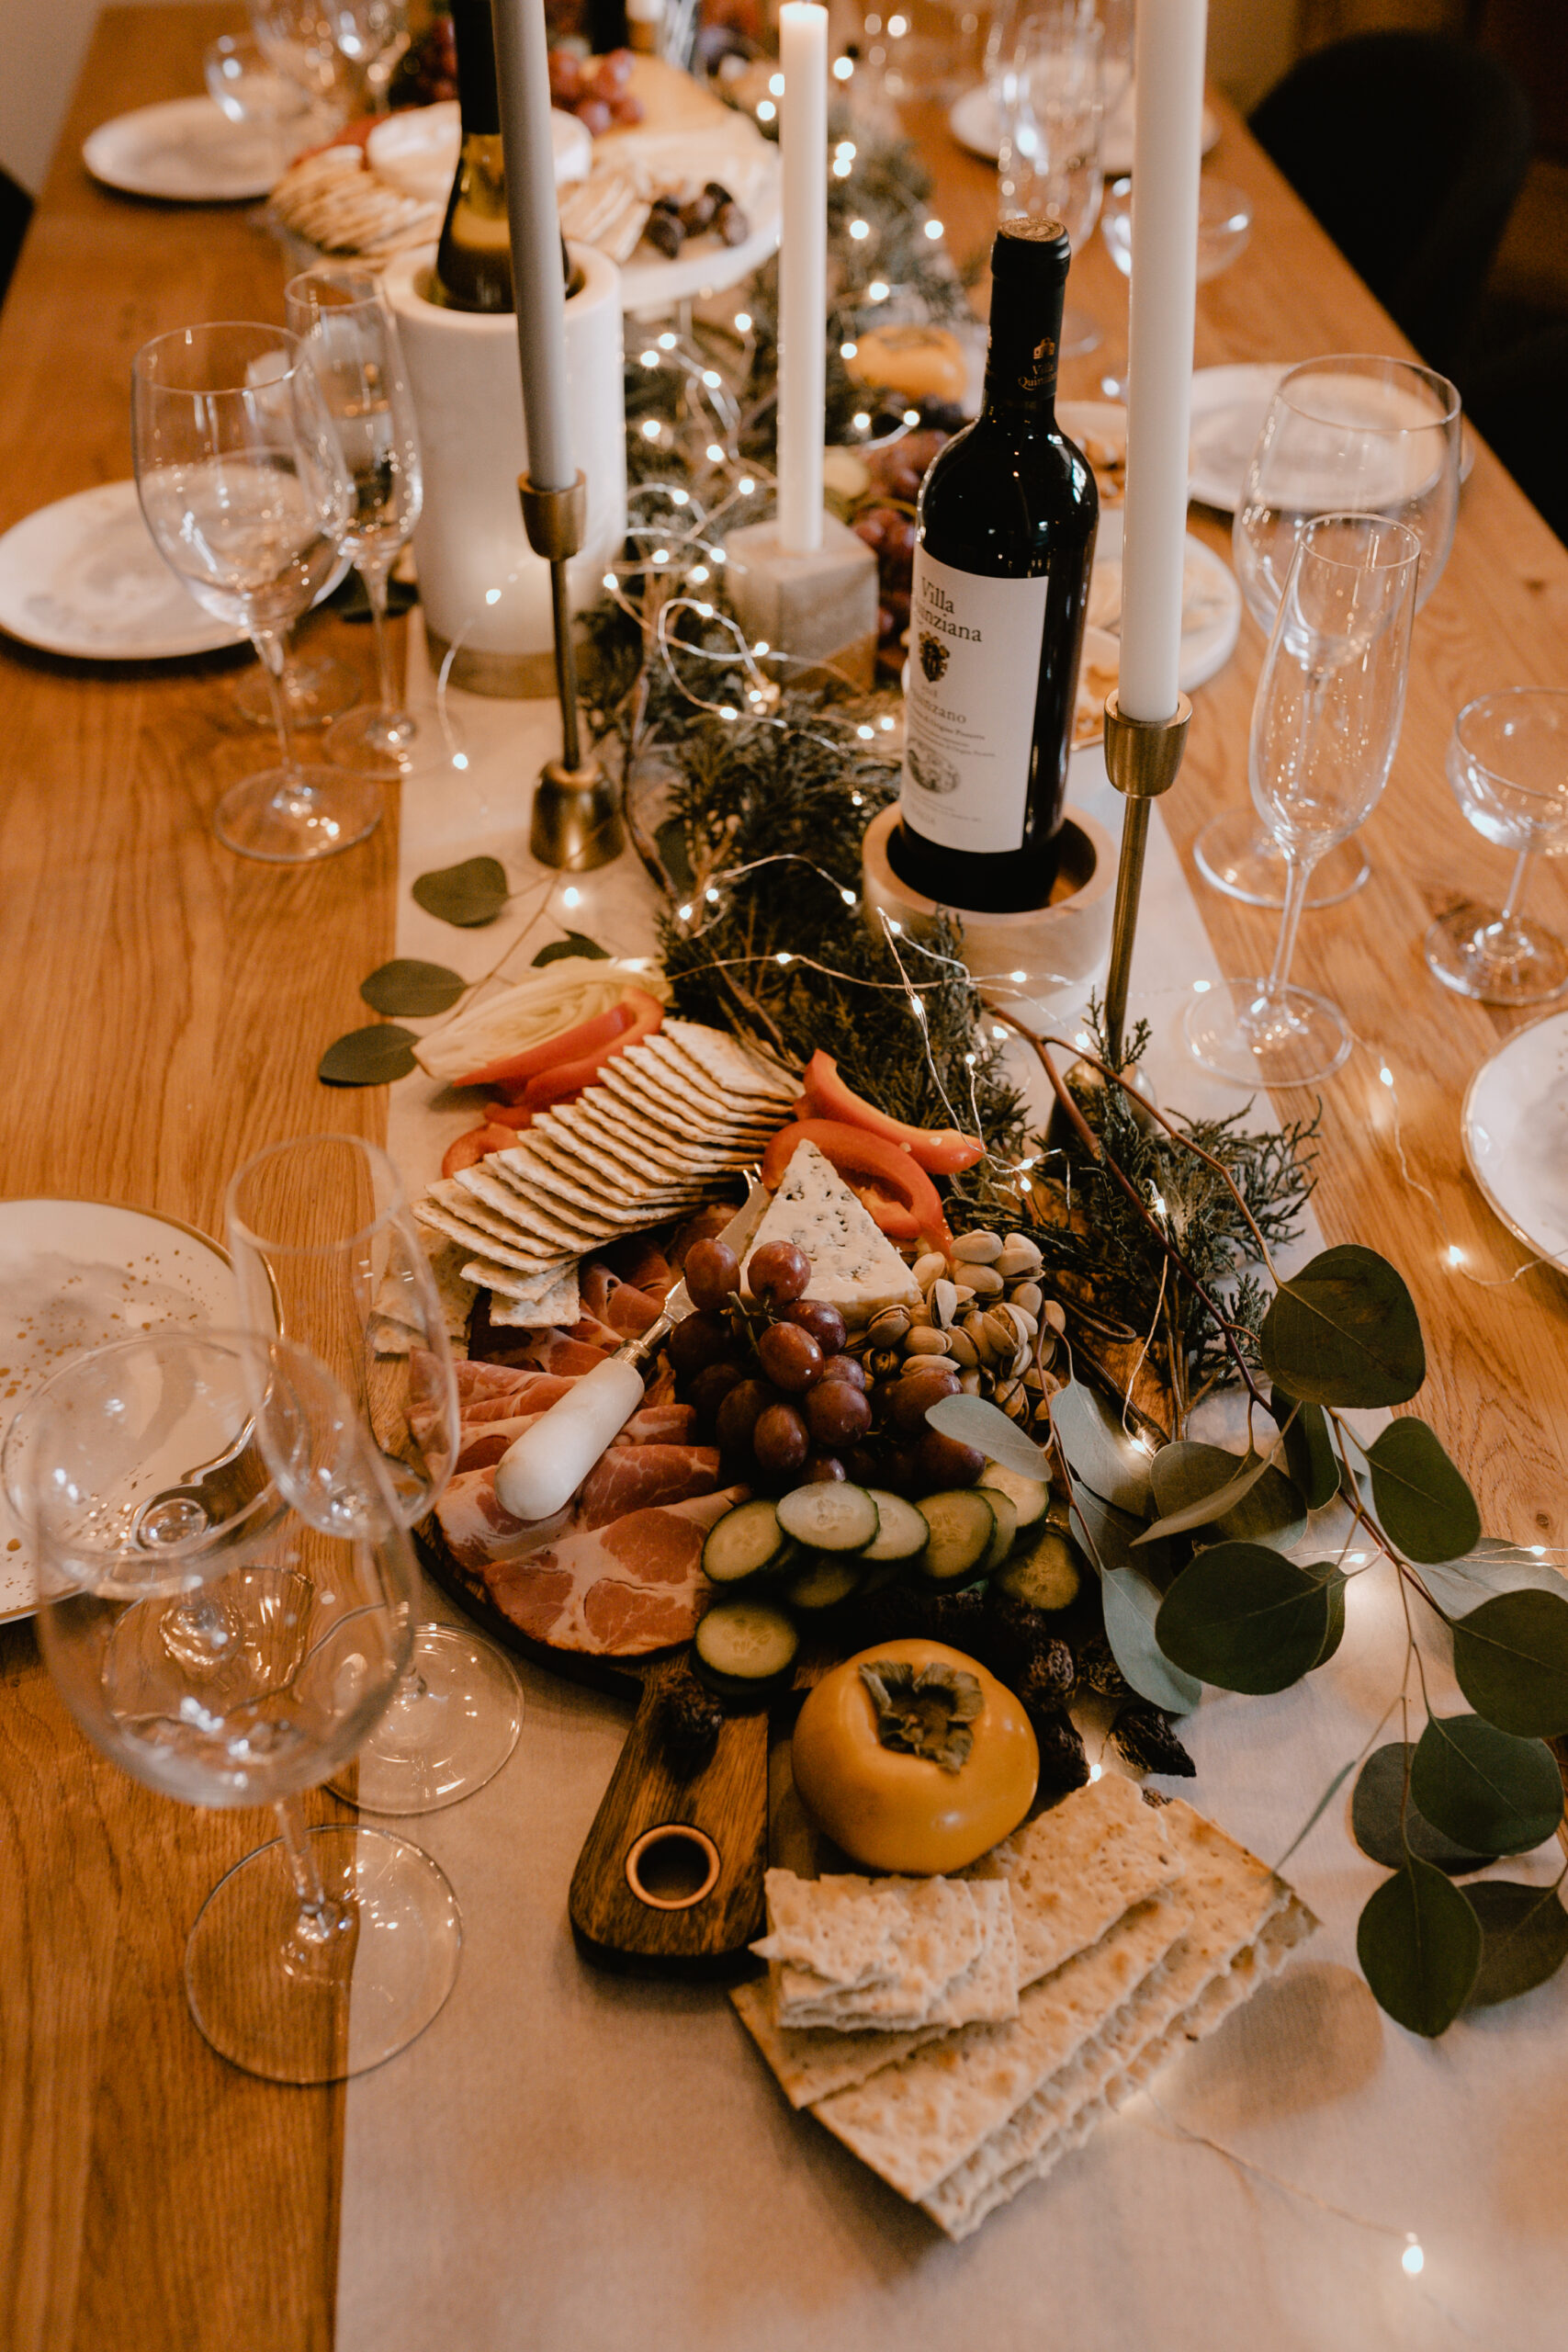 a very merry charcuterie board gathering #holidays #verymerry #charcuterieboard